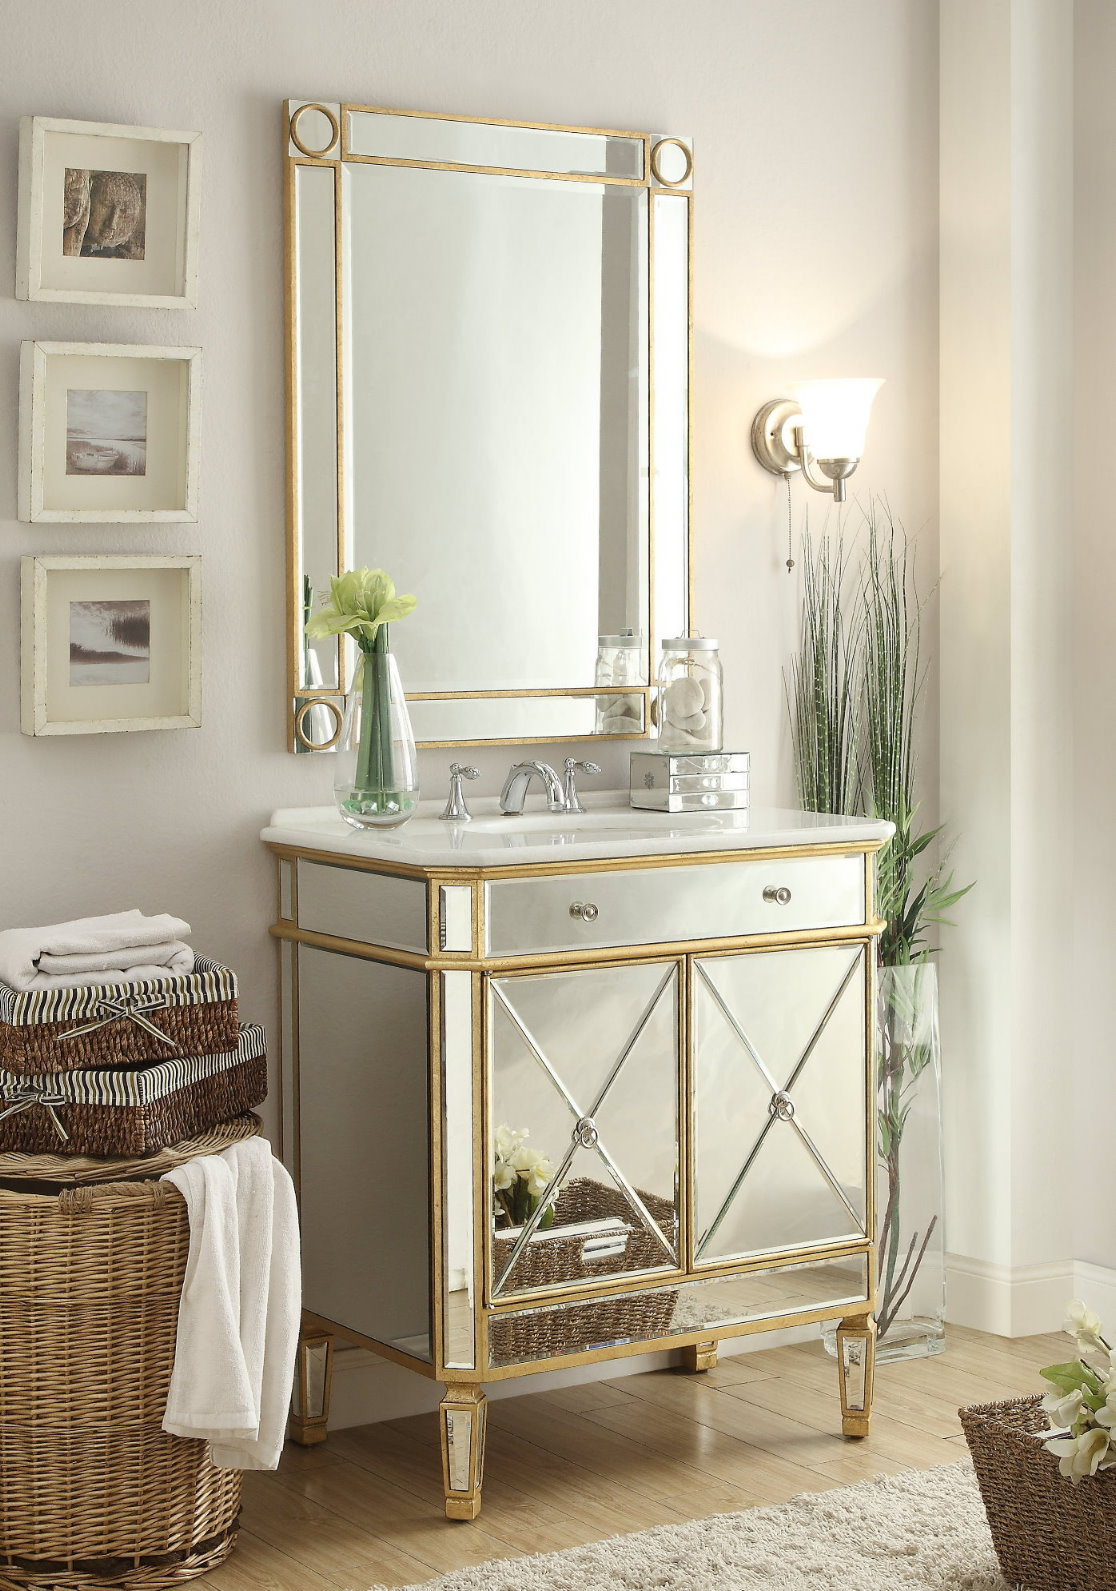 Adelina 32 Inch Mirrored Gold Bathroom Vanity Mirror